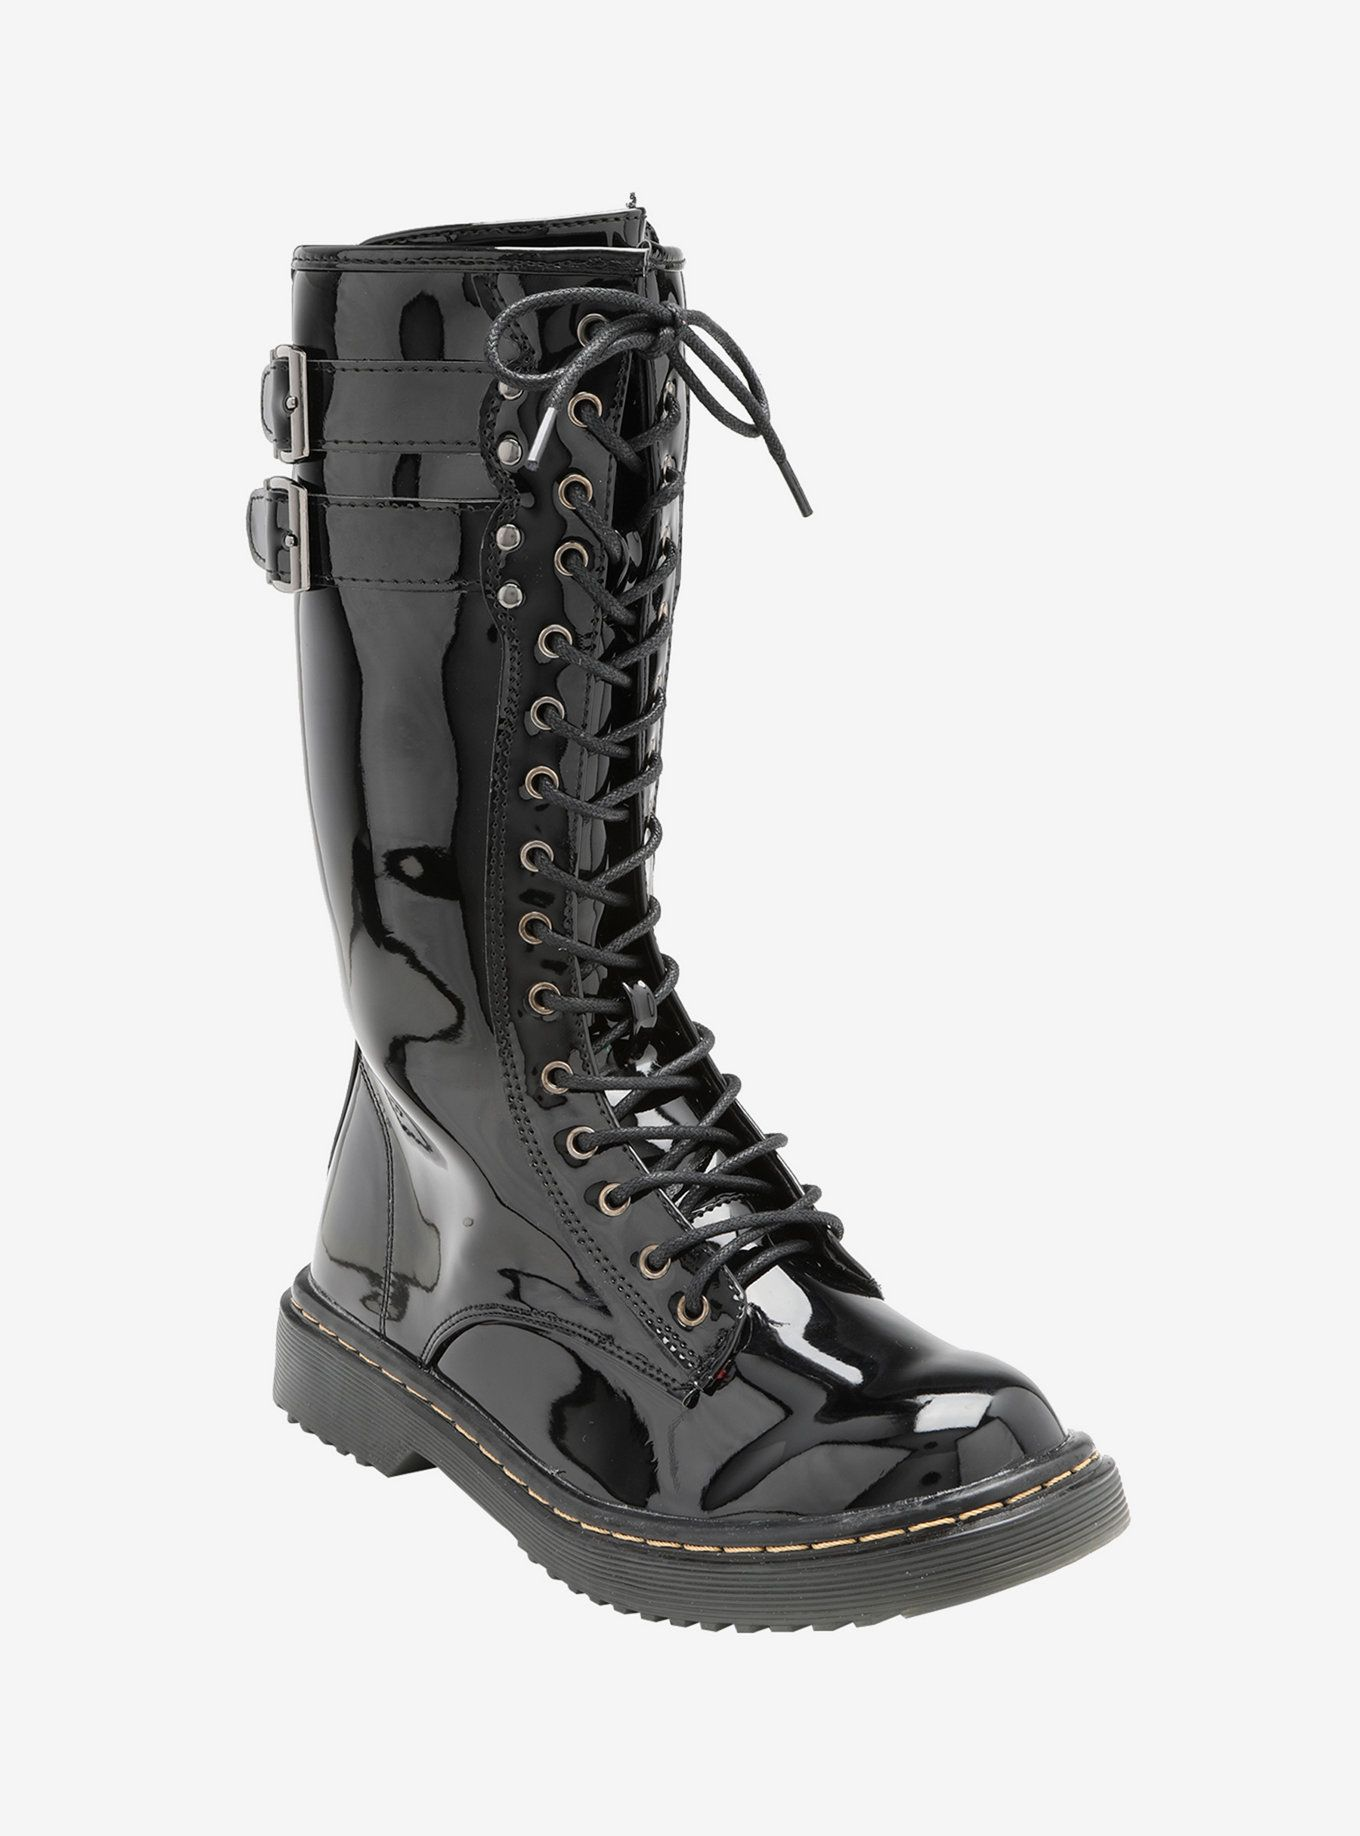 Double buckle shiny pu tall combat boots combat boots